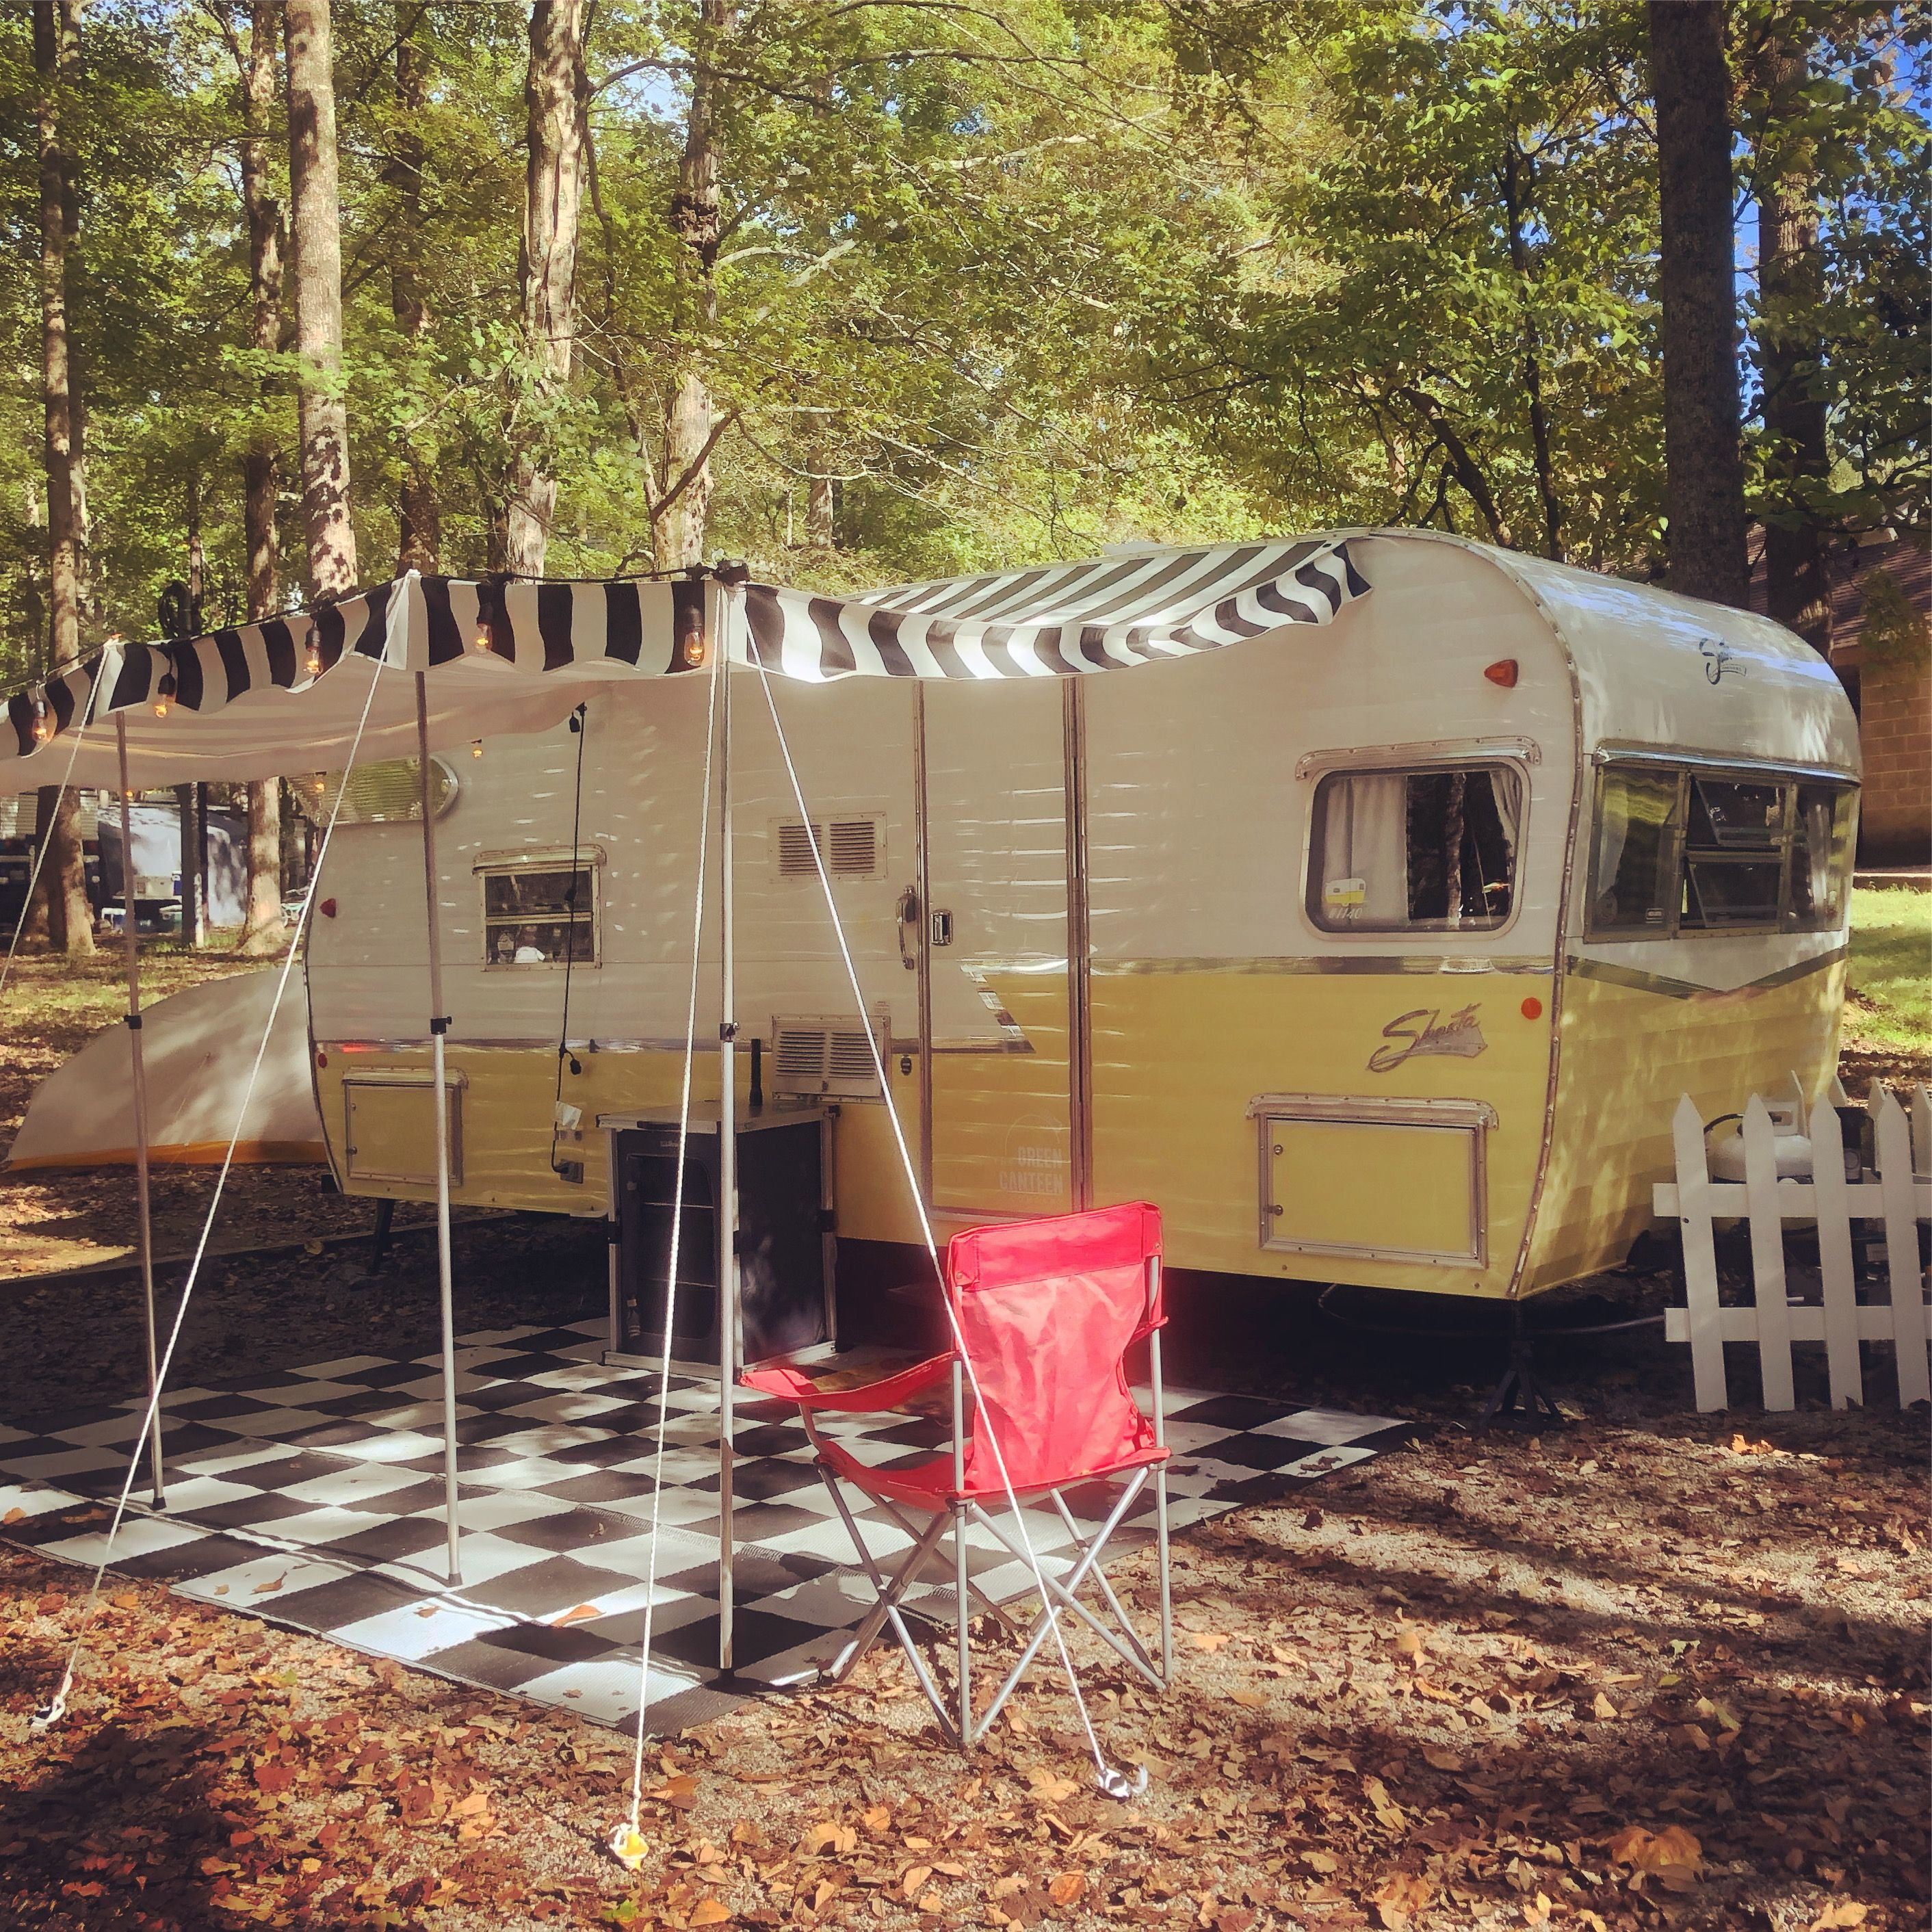 Escape the ordinaryrent charming retro campers from the